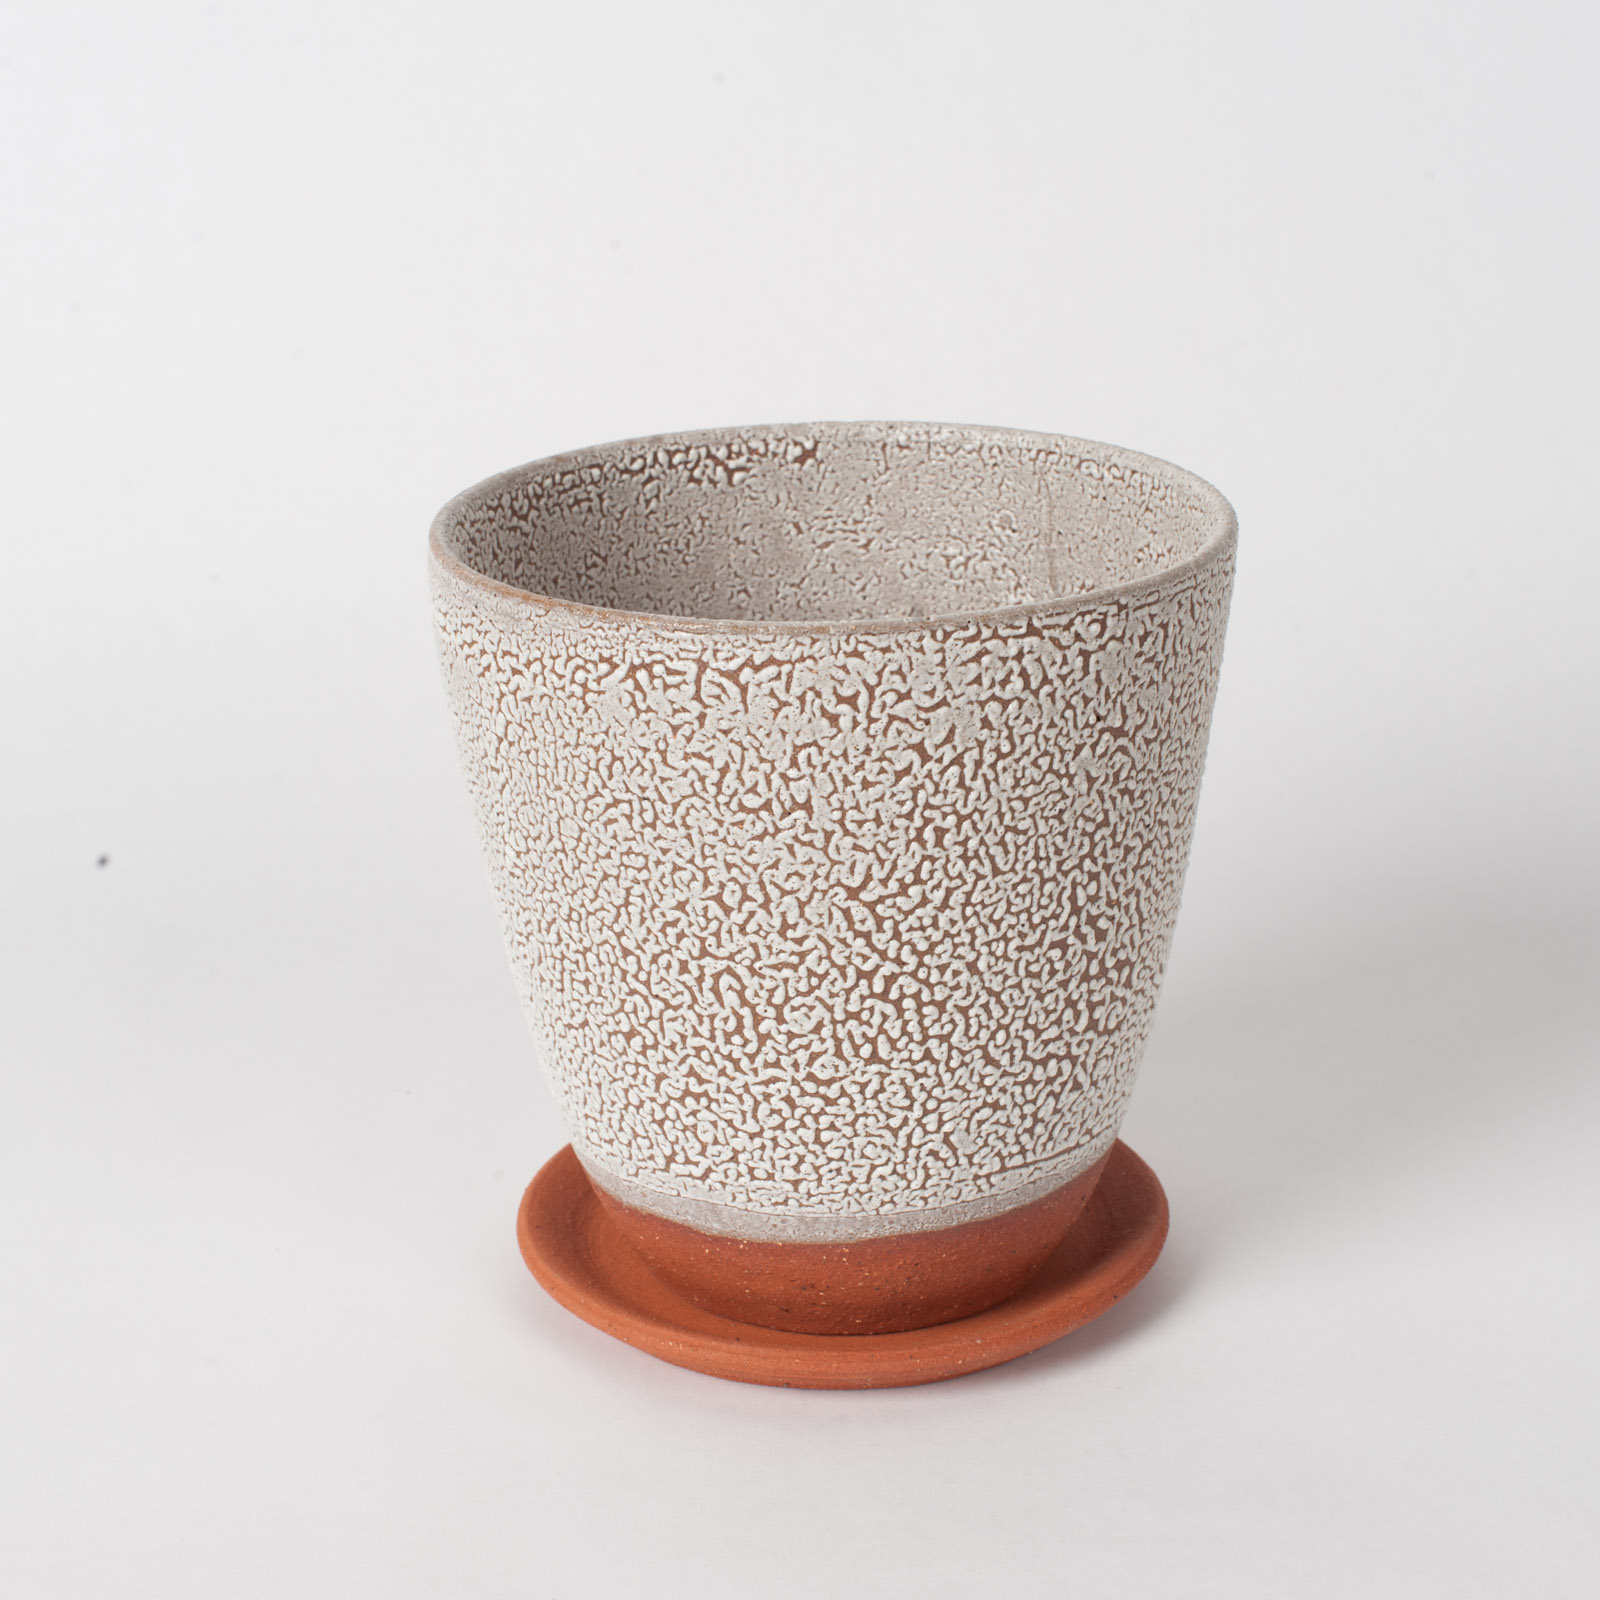 Crawl Planter In Red Terracotta Midfire With White Crawl Glaze By Oh Hey Grace 02